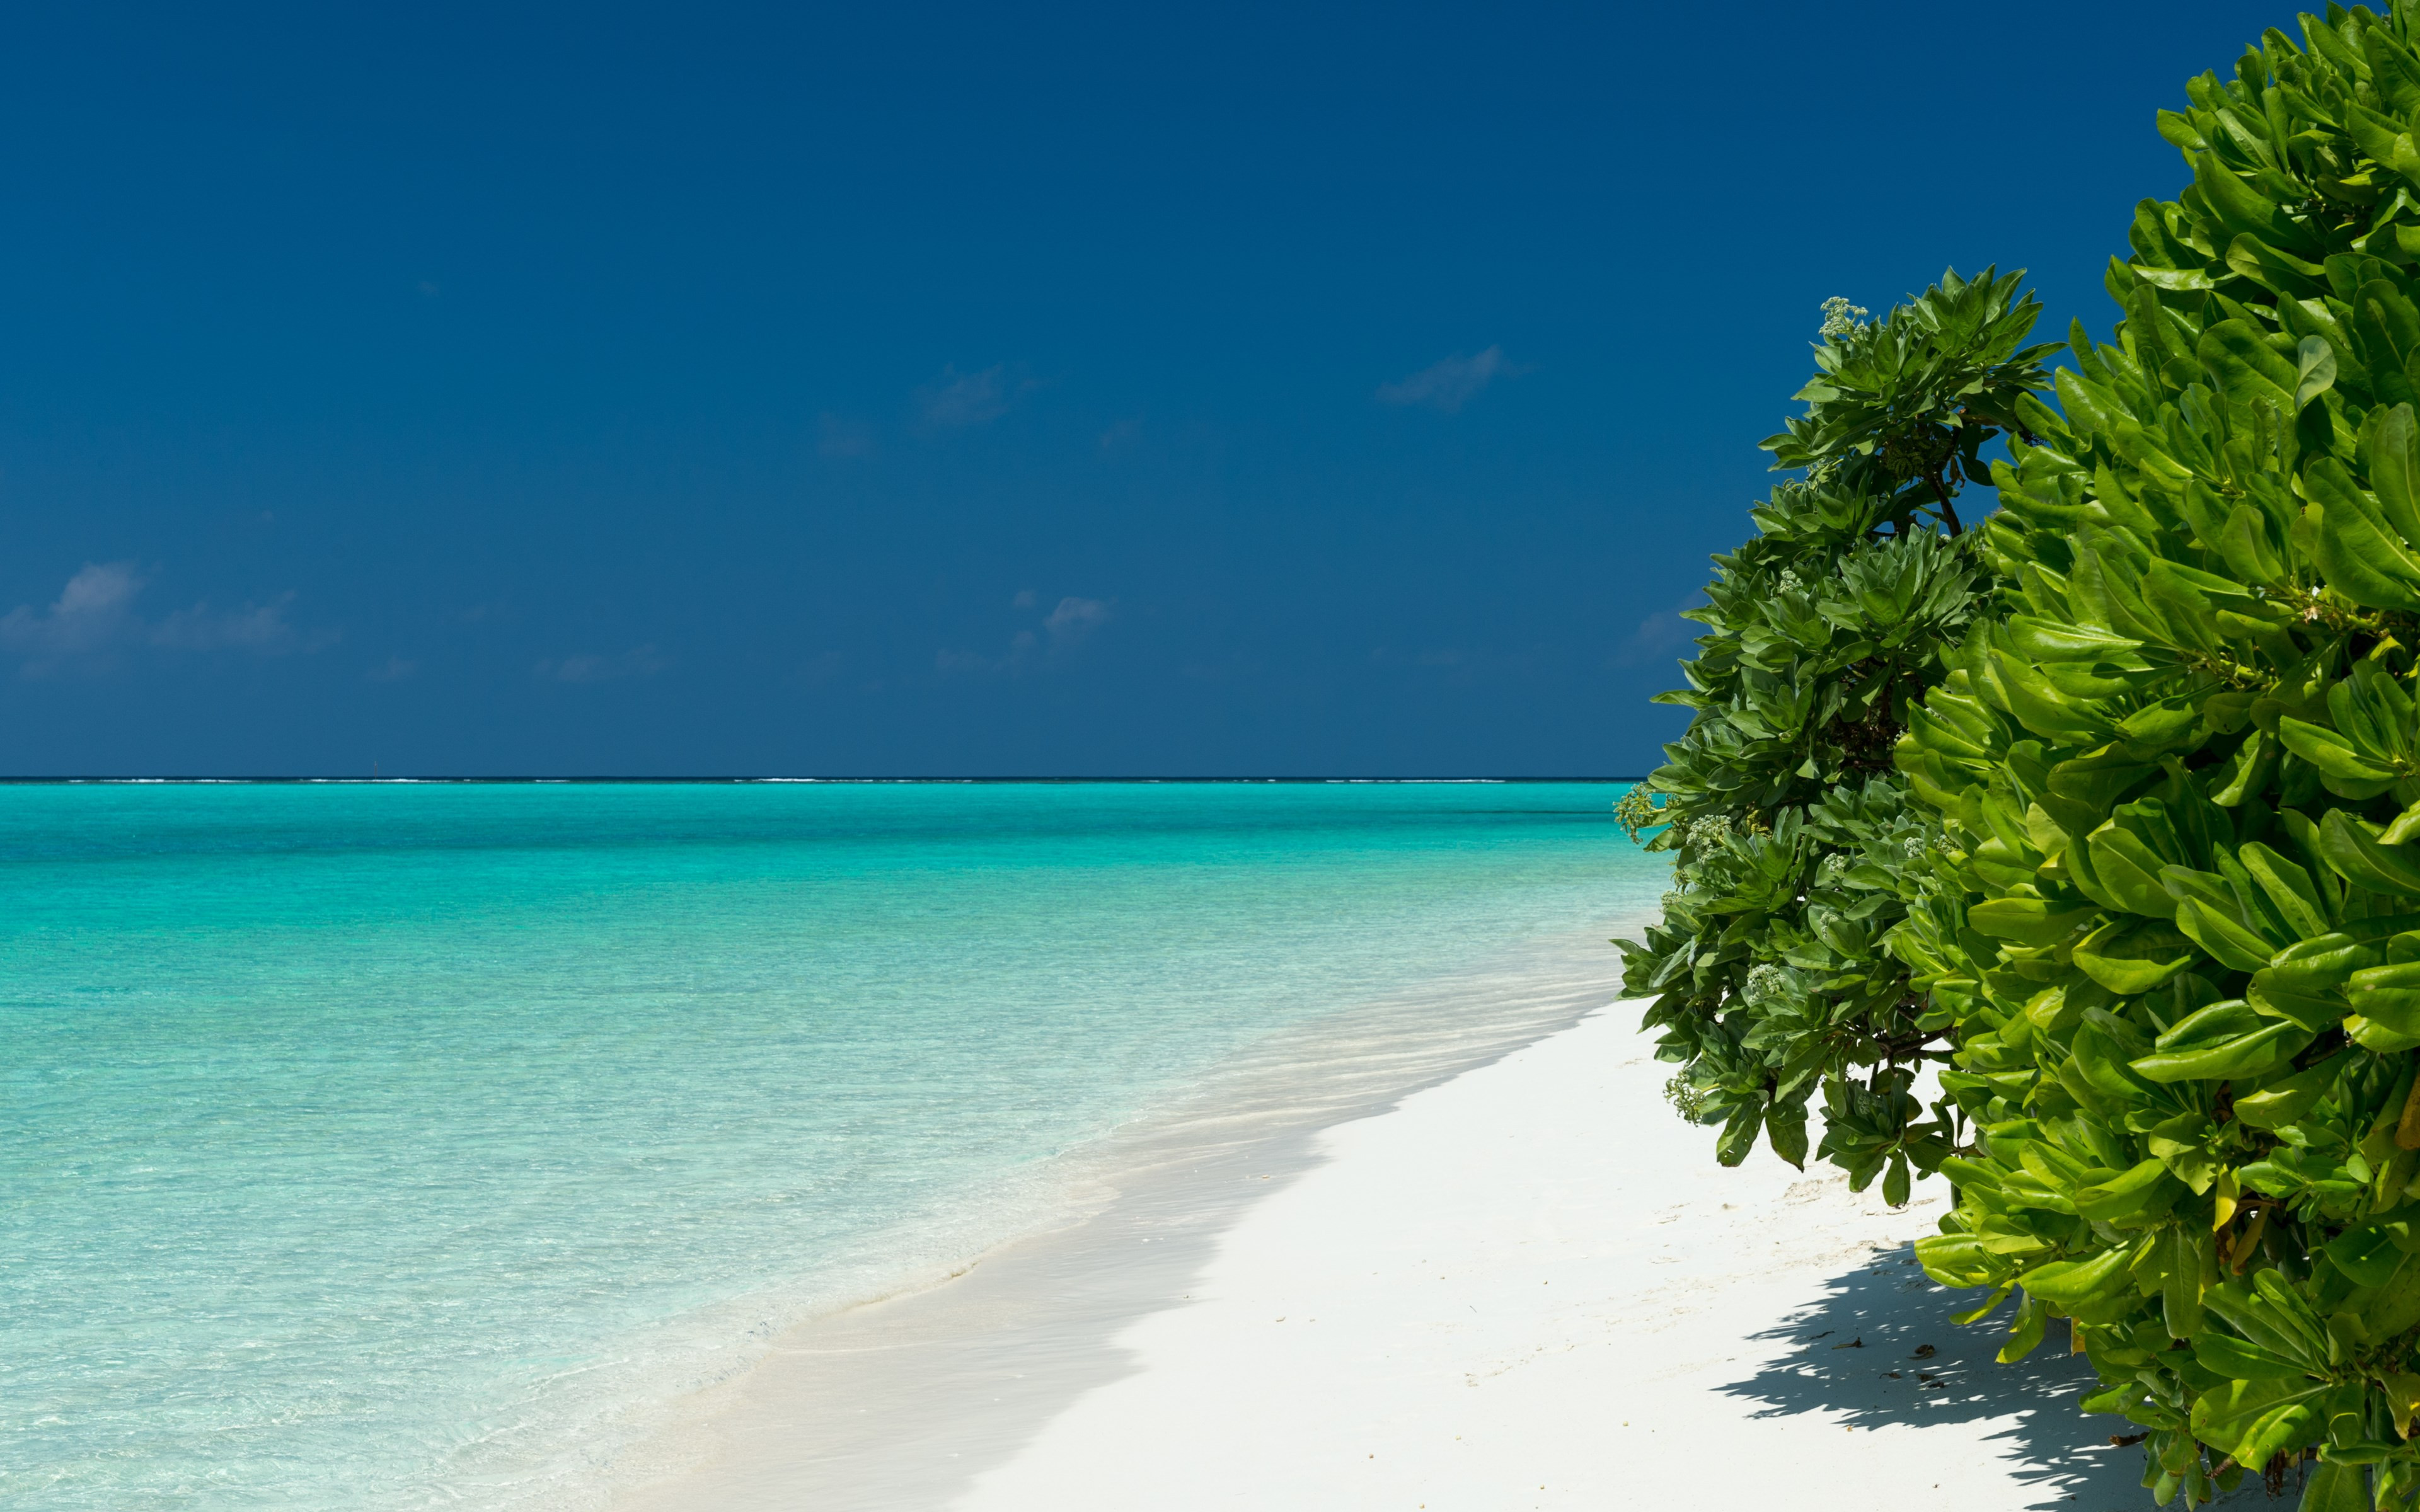 Turquoise waters of Maldives wallpaper 3840x2400